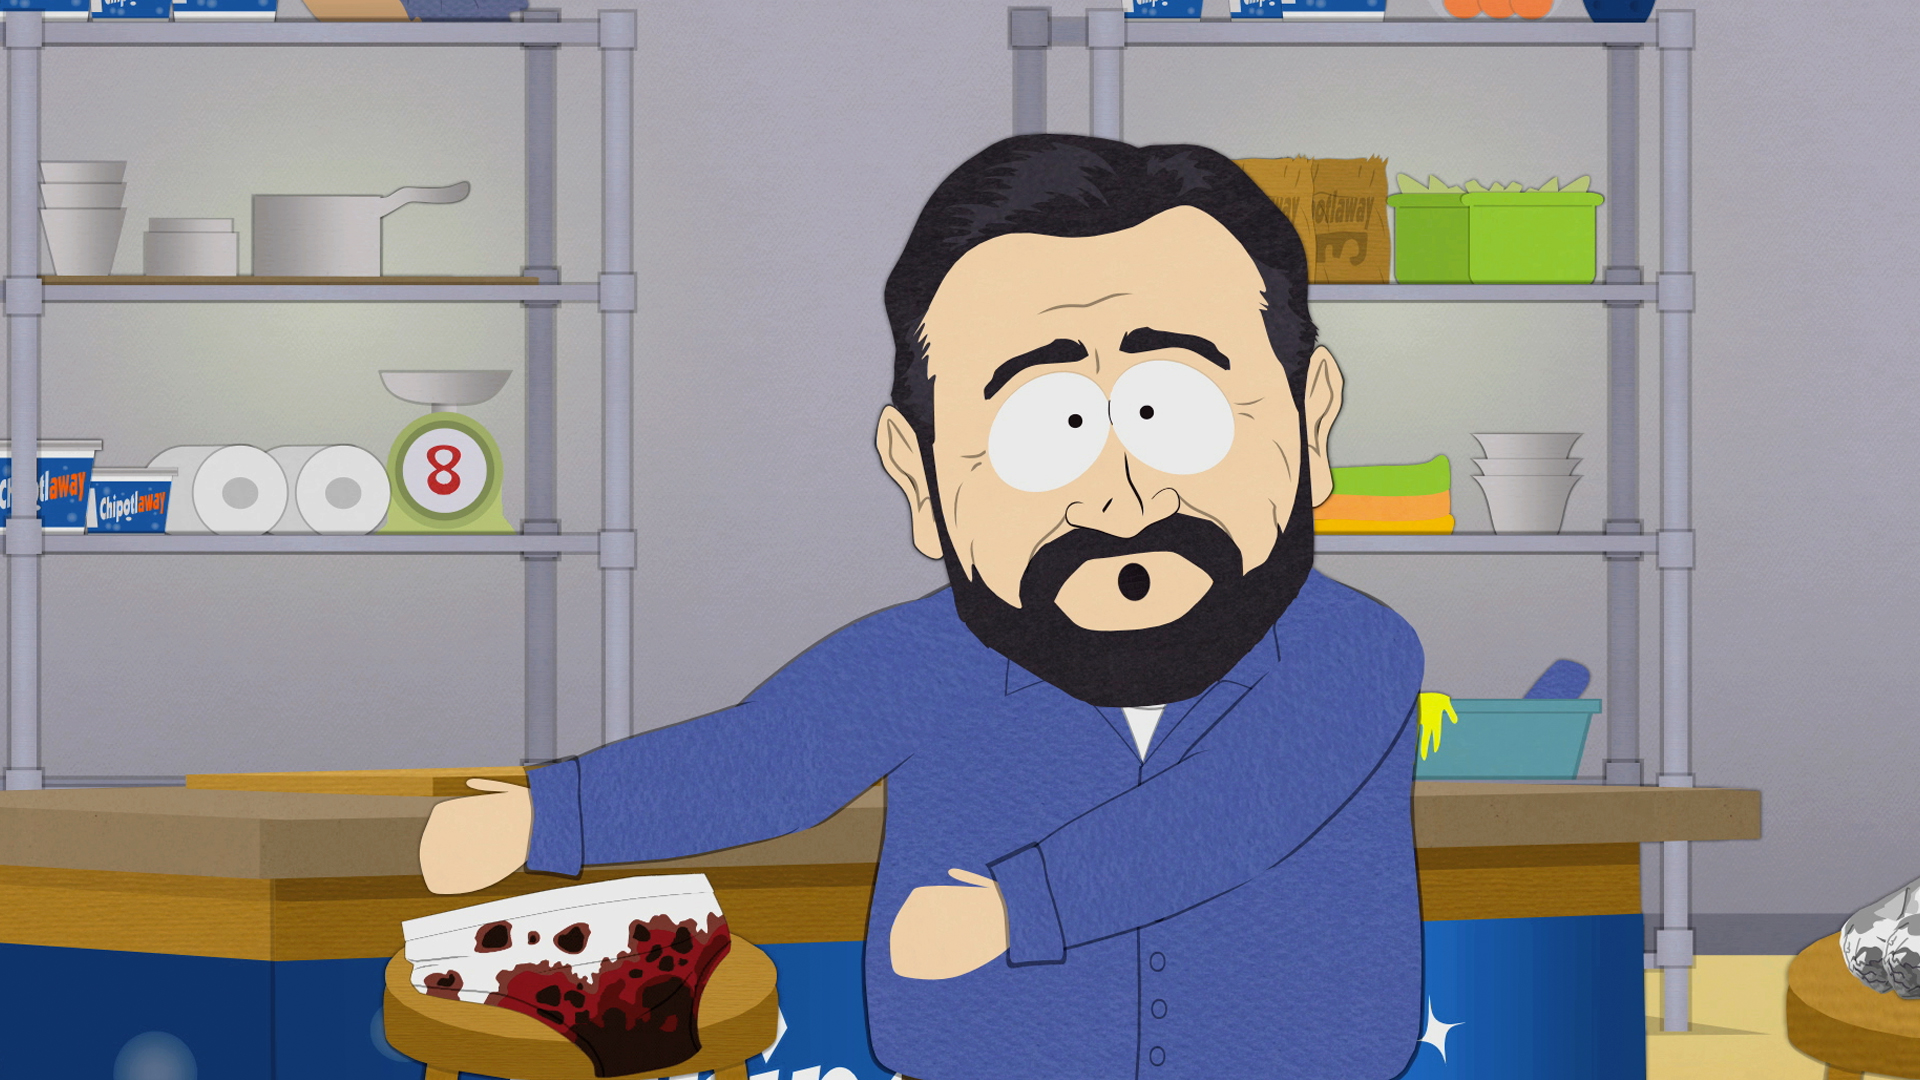 south-park-s13e08c03-billy-mays-here-16x9